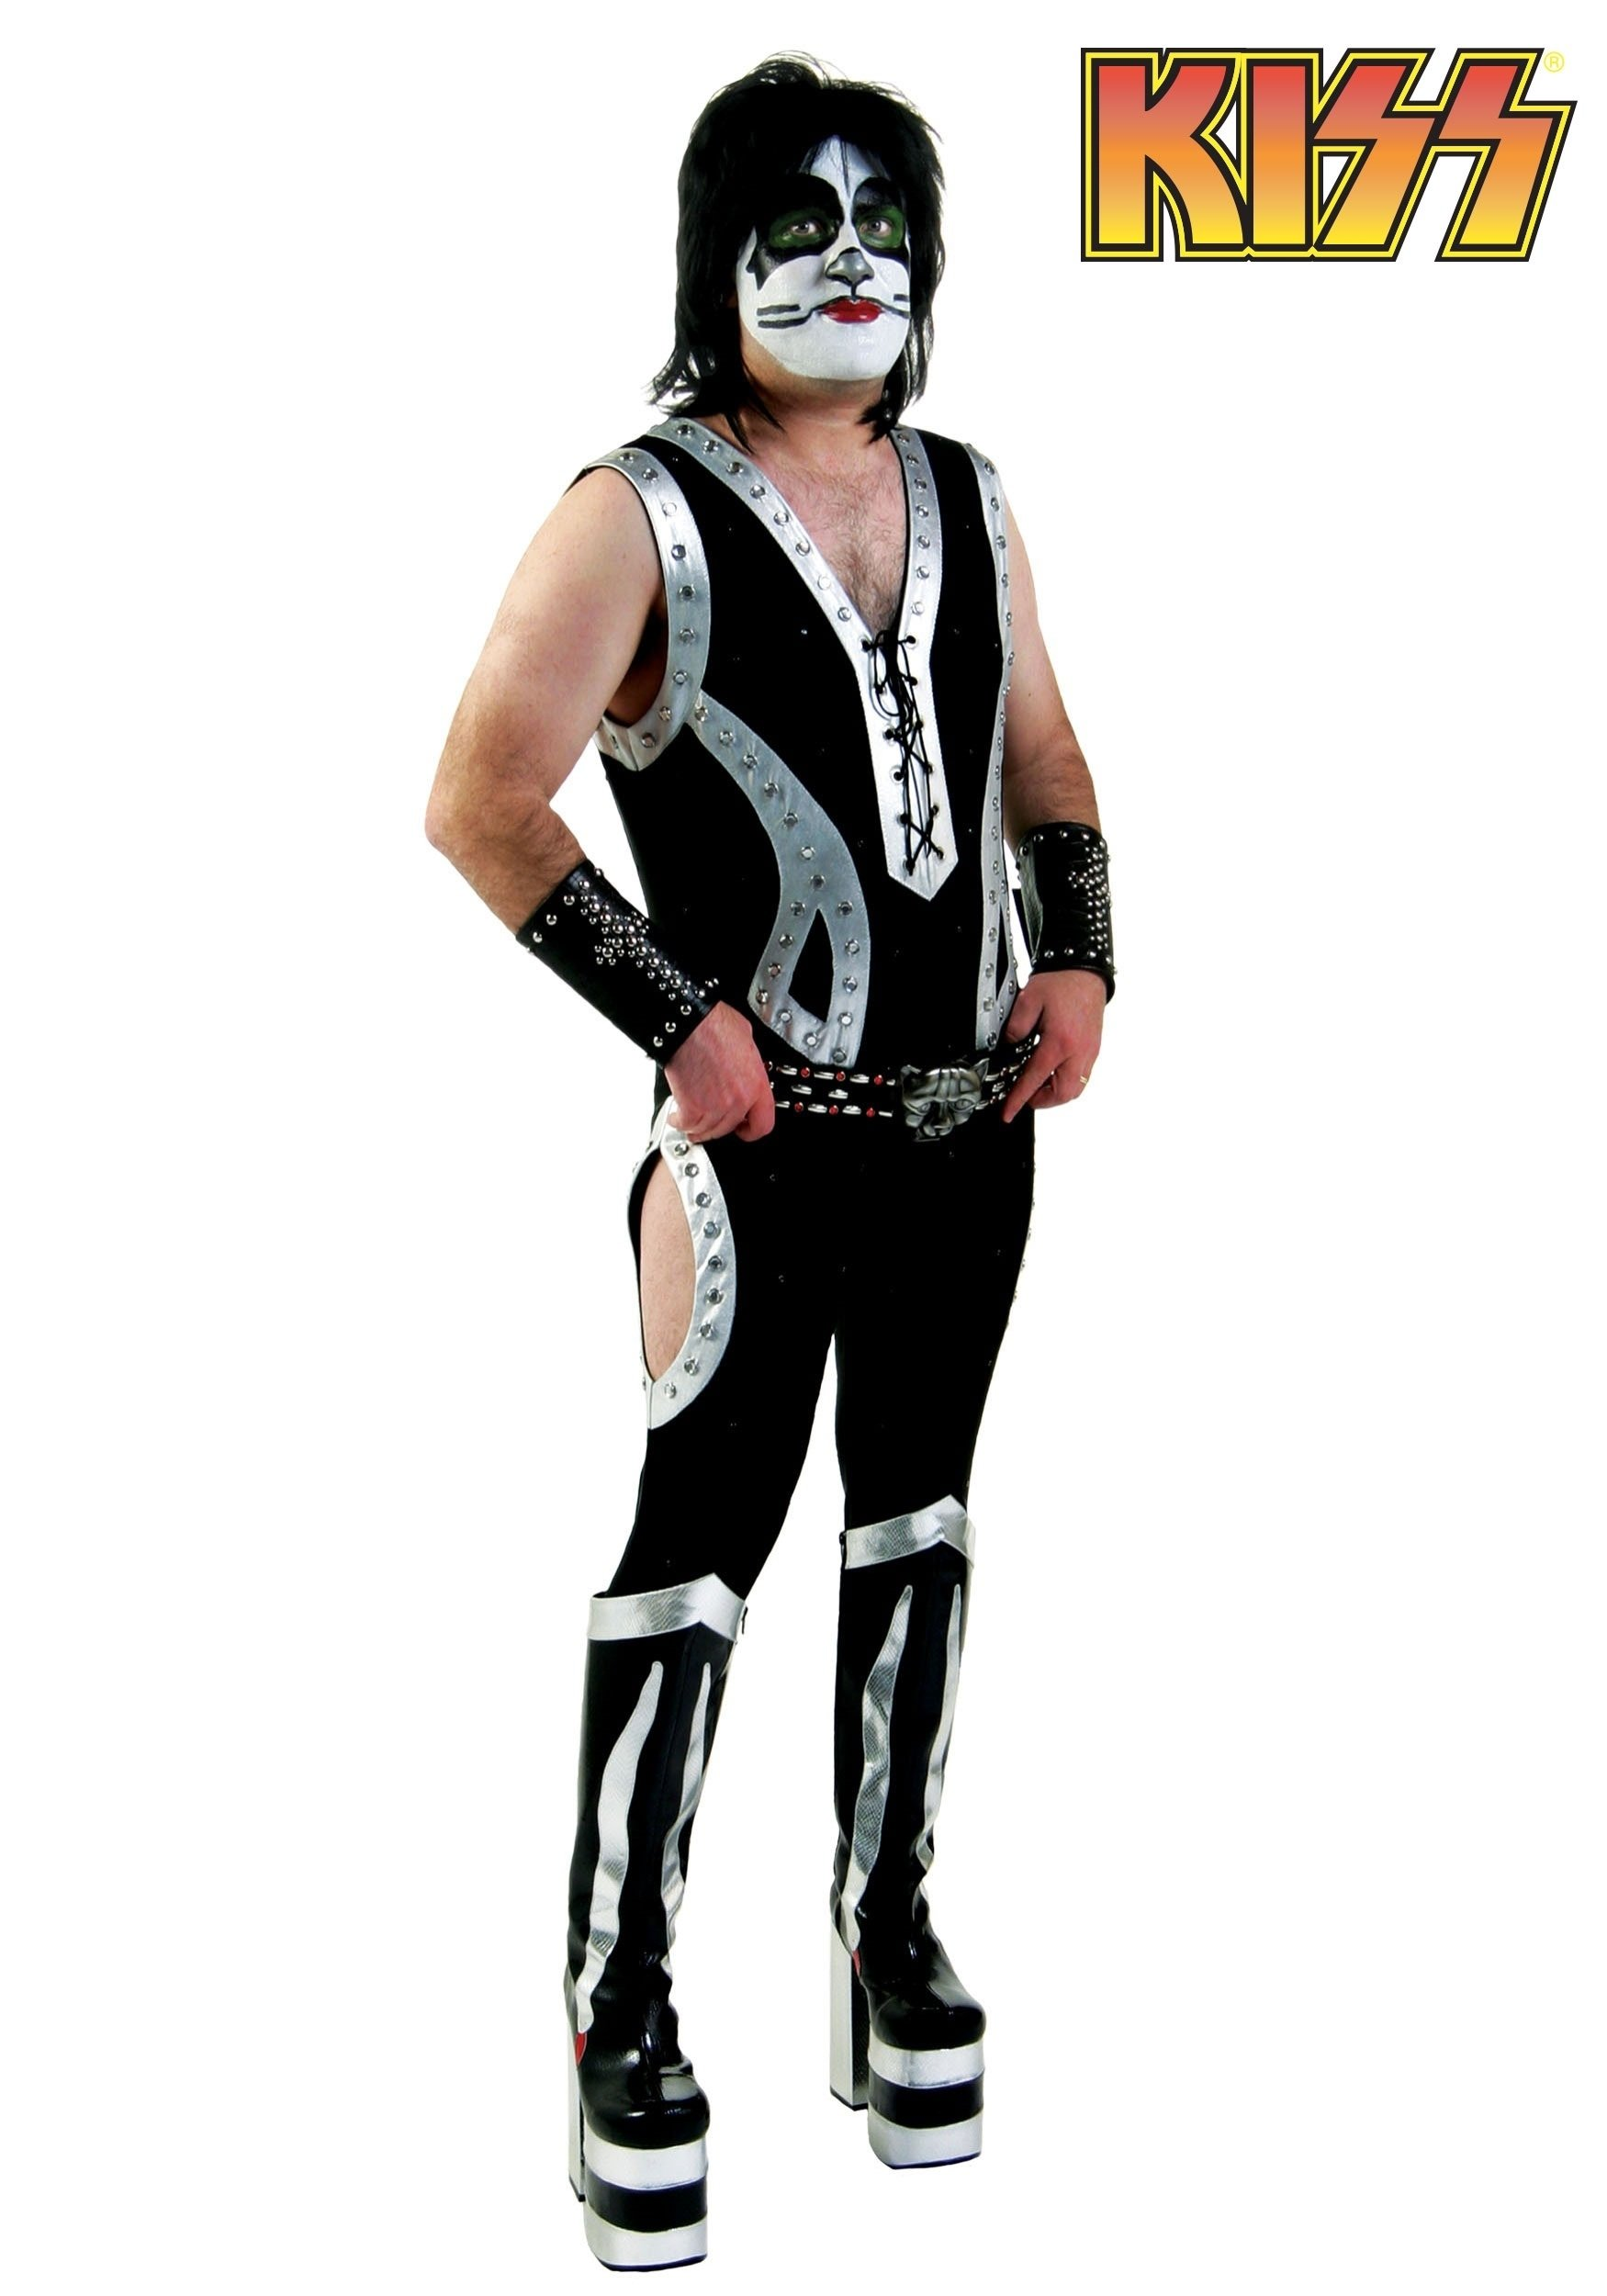 10 Ideal Rock N Roll Costume Ideas authentic kiss costume catman 2021